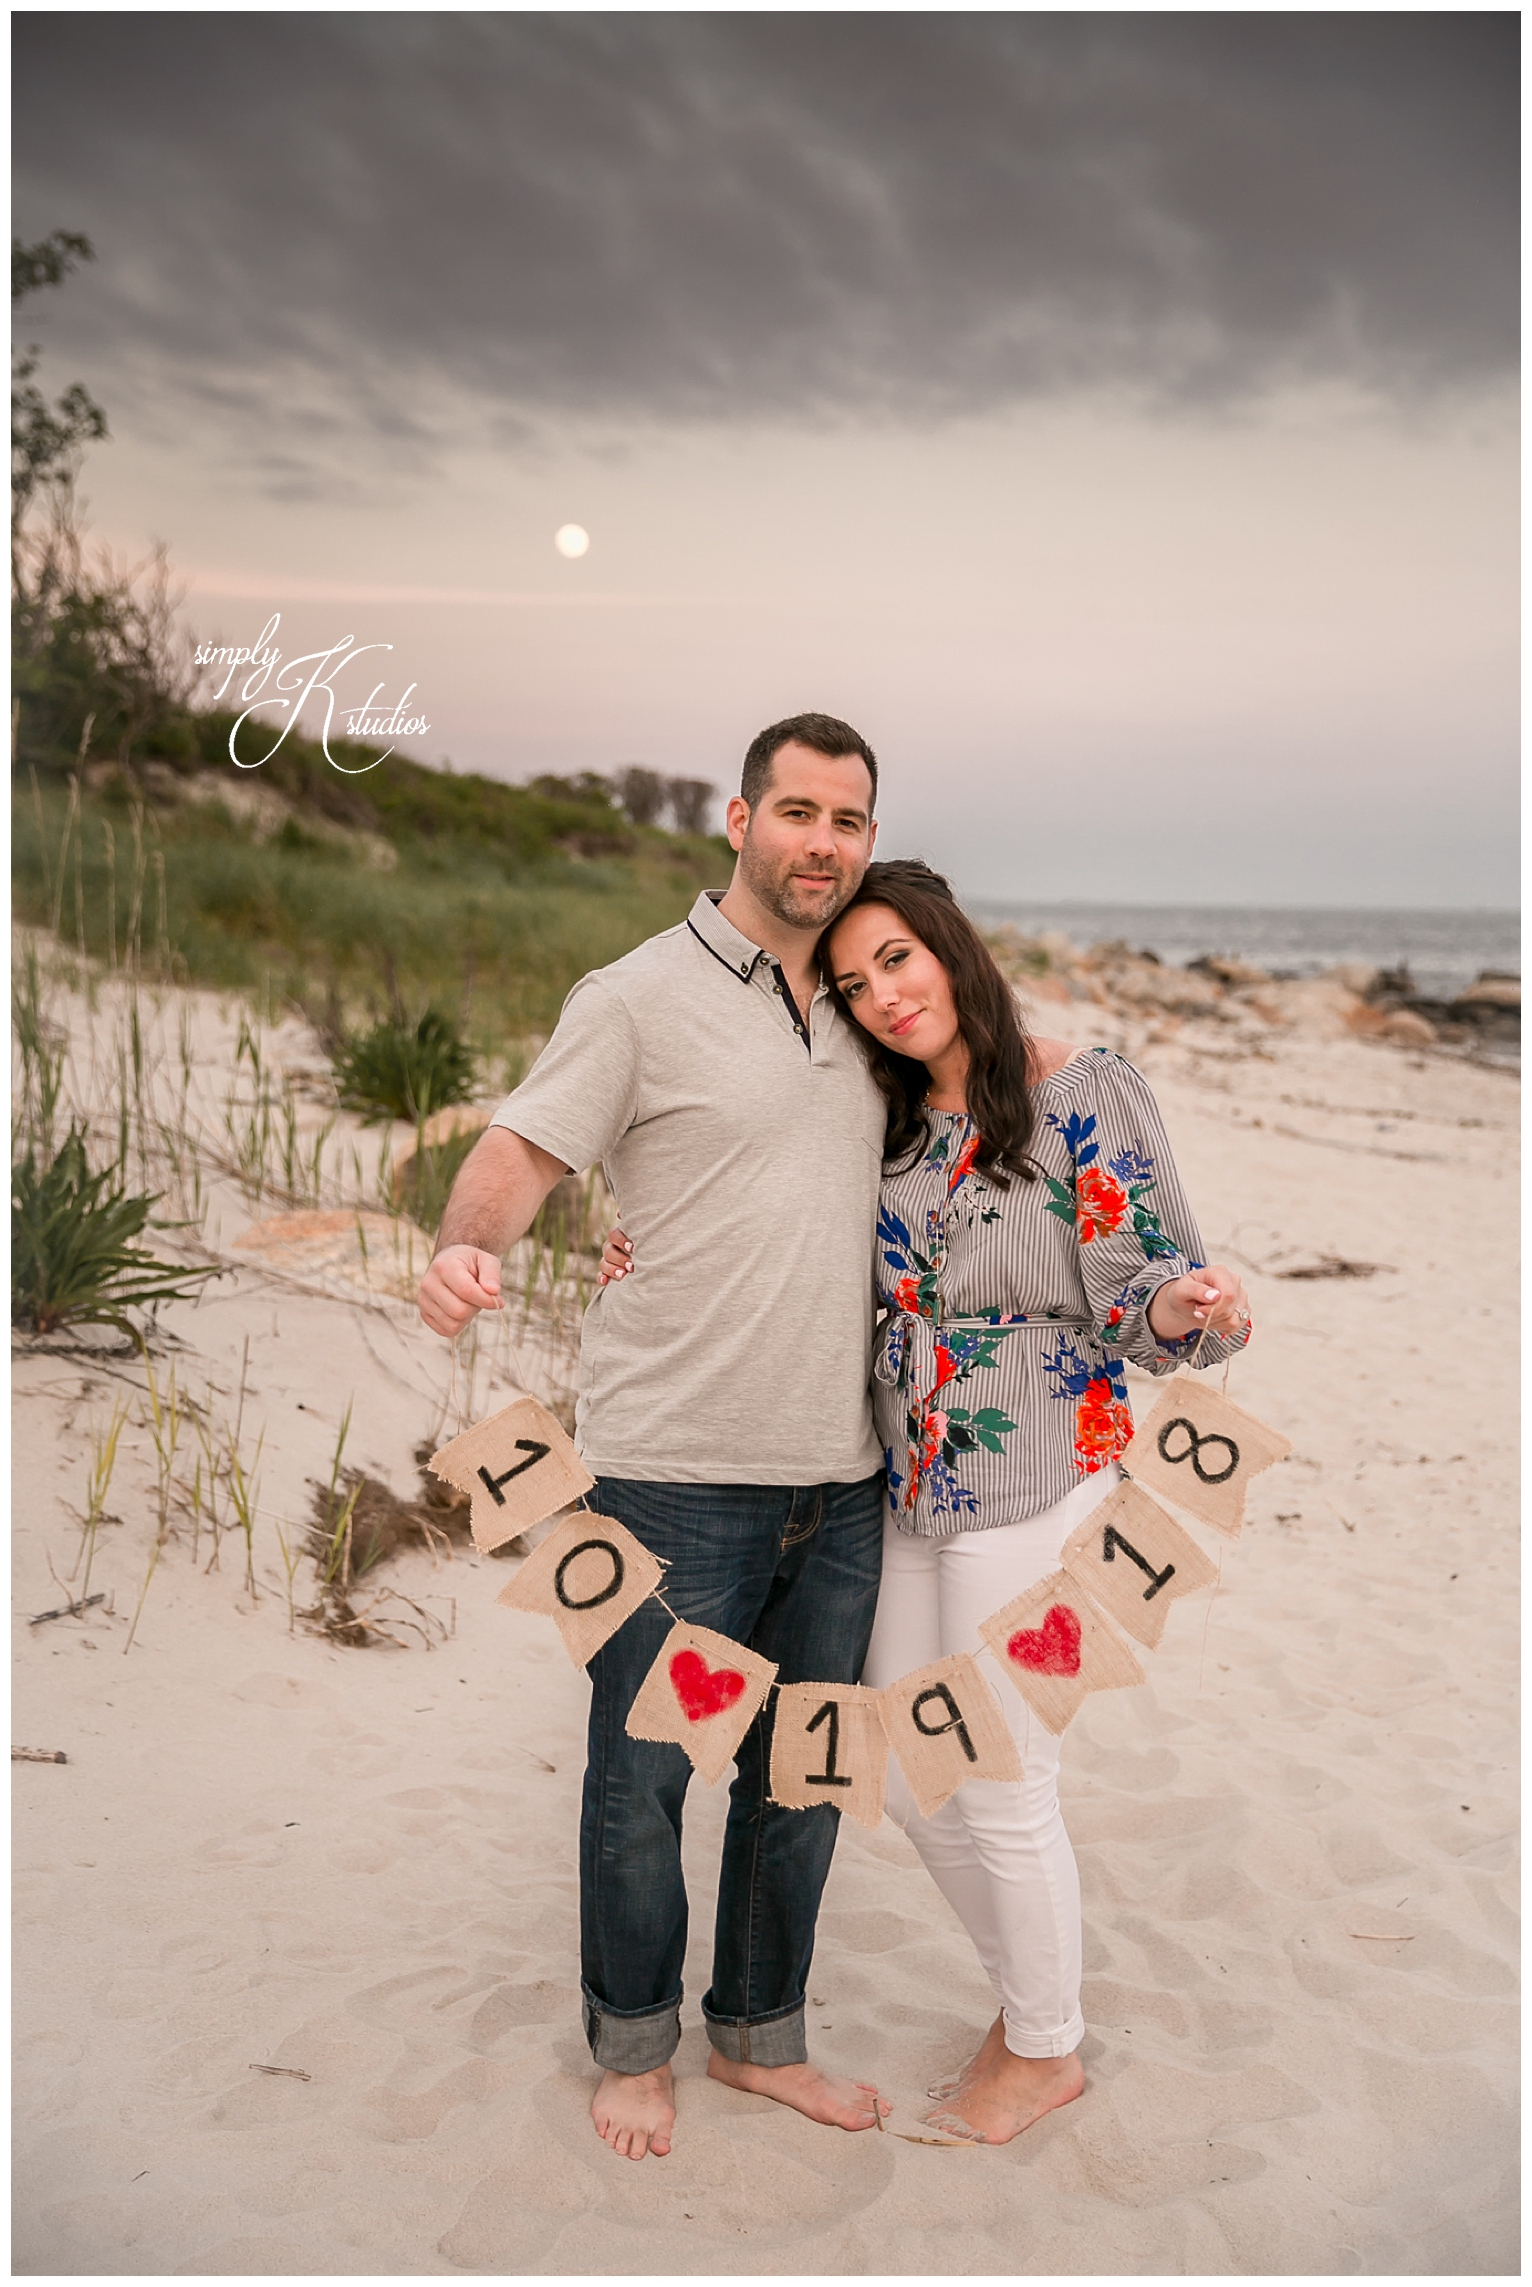 Sunset Beach Engagement Photos in CT.jpg